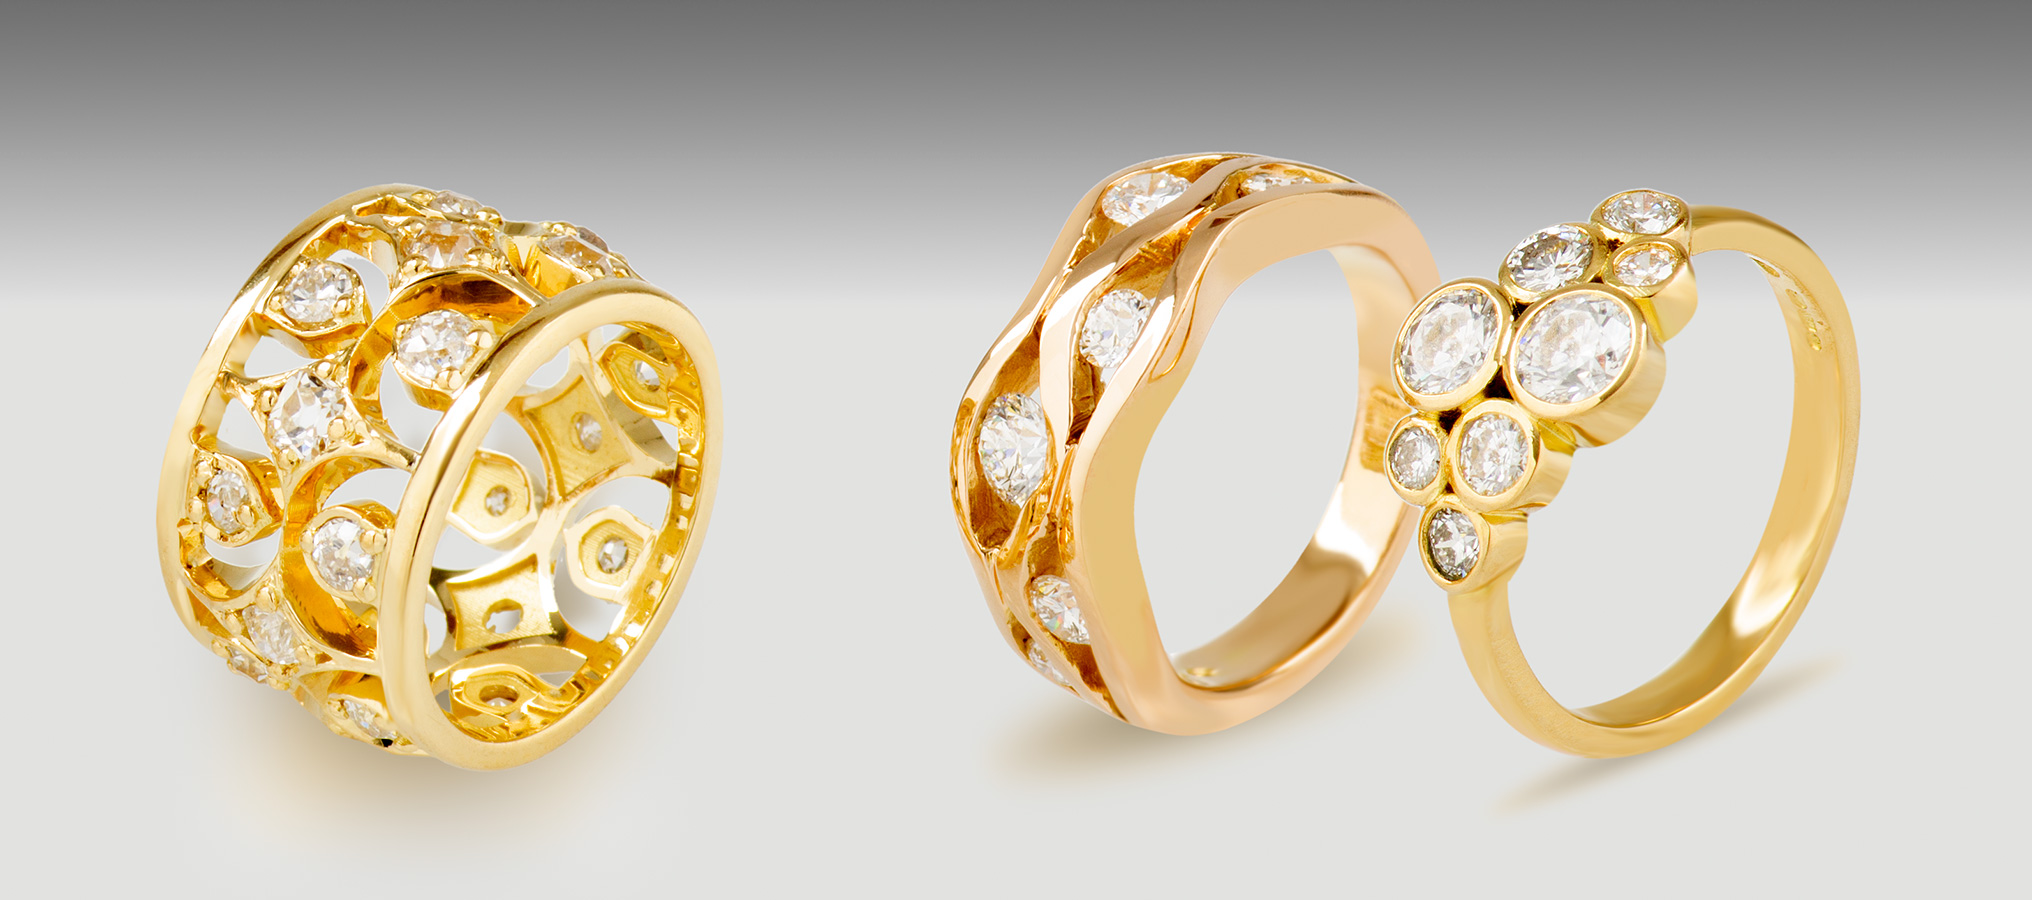 18ct Yellow Gold White Diamond Dress Rings